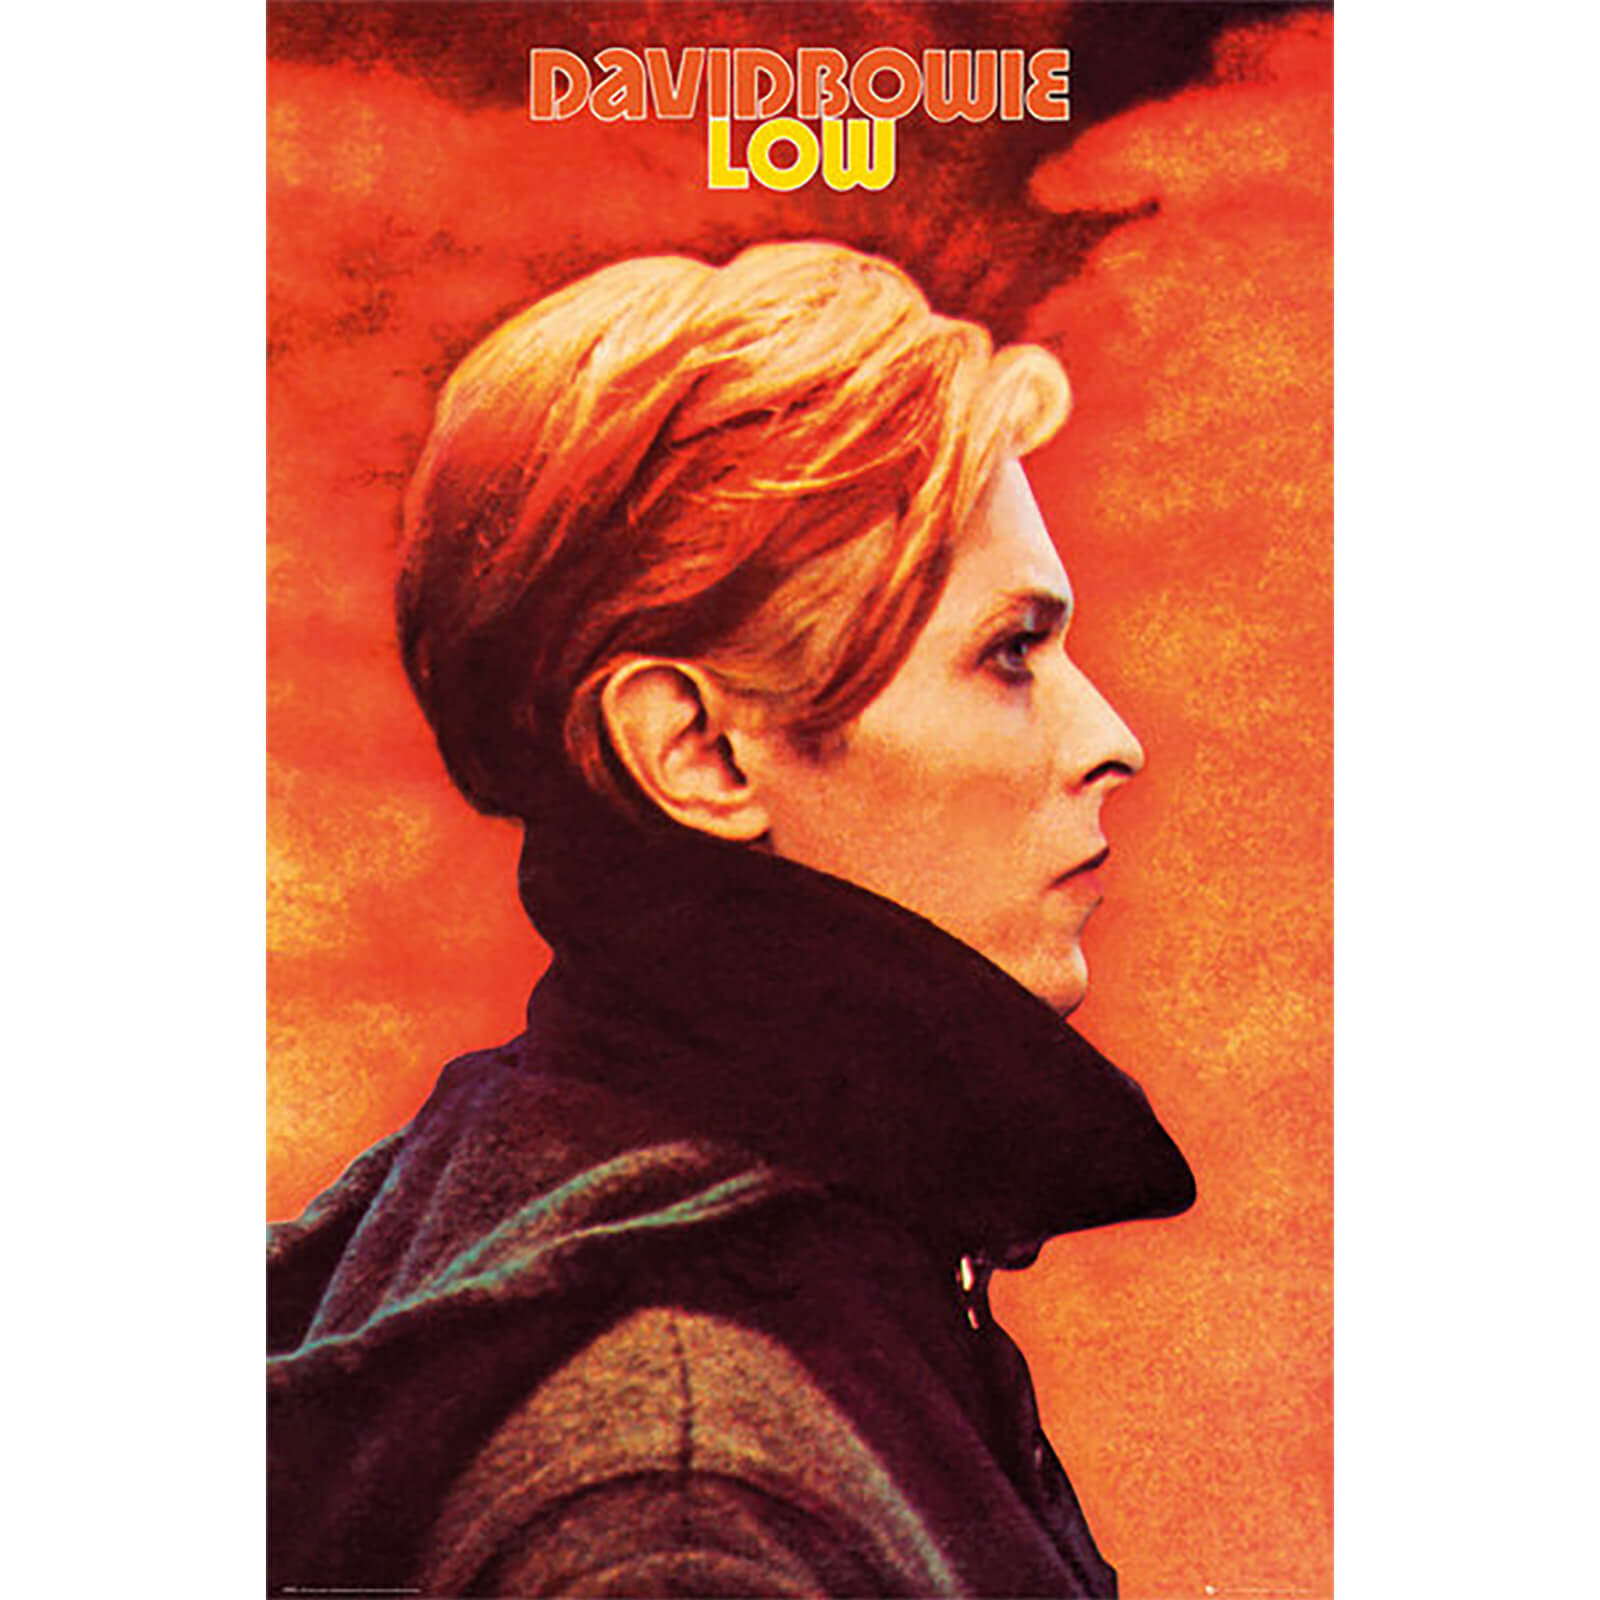 David Bowie Low - 61 x 91.5cm Maxi Poster